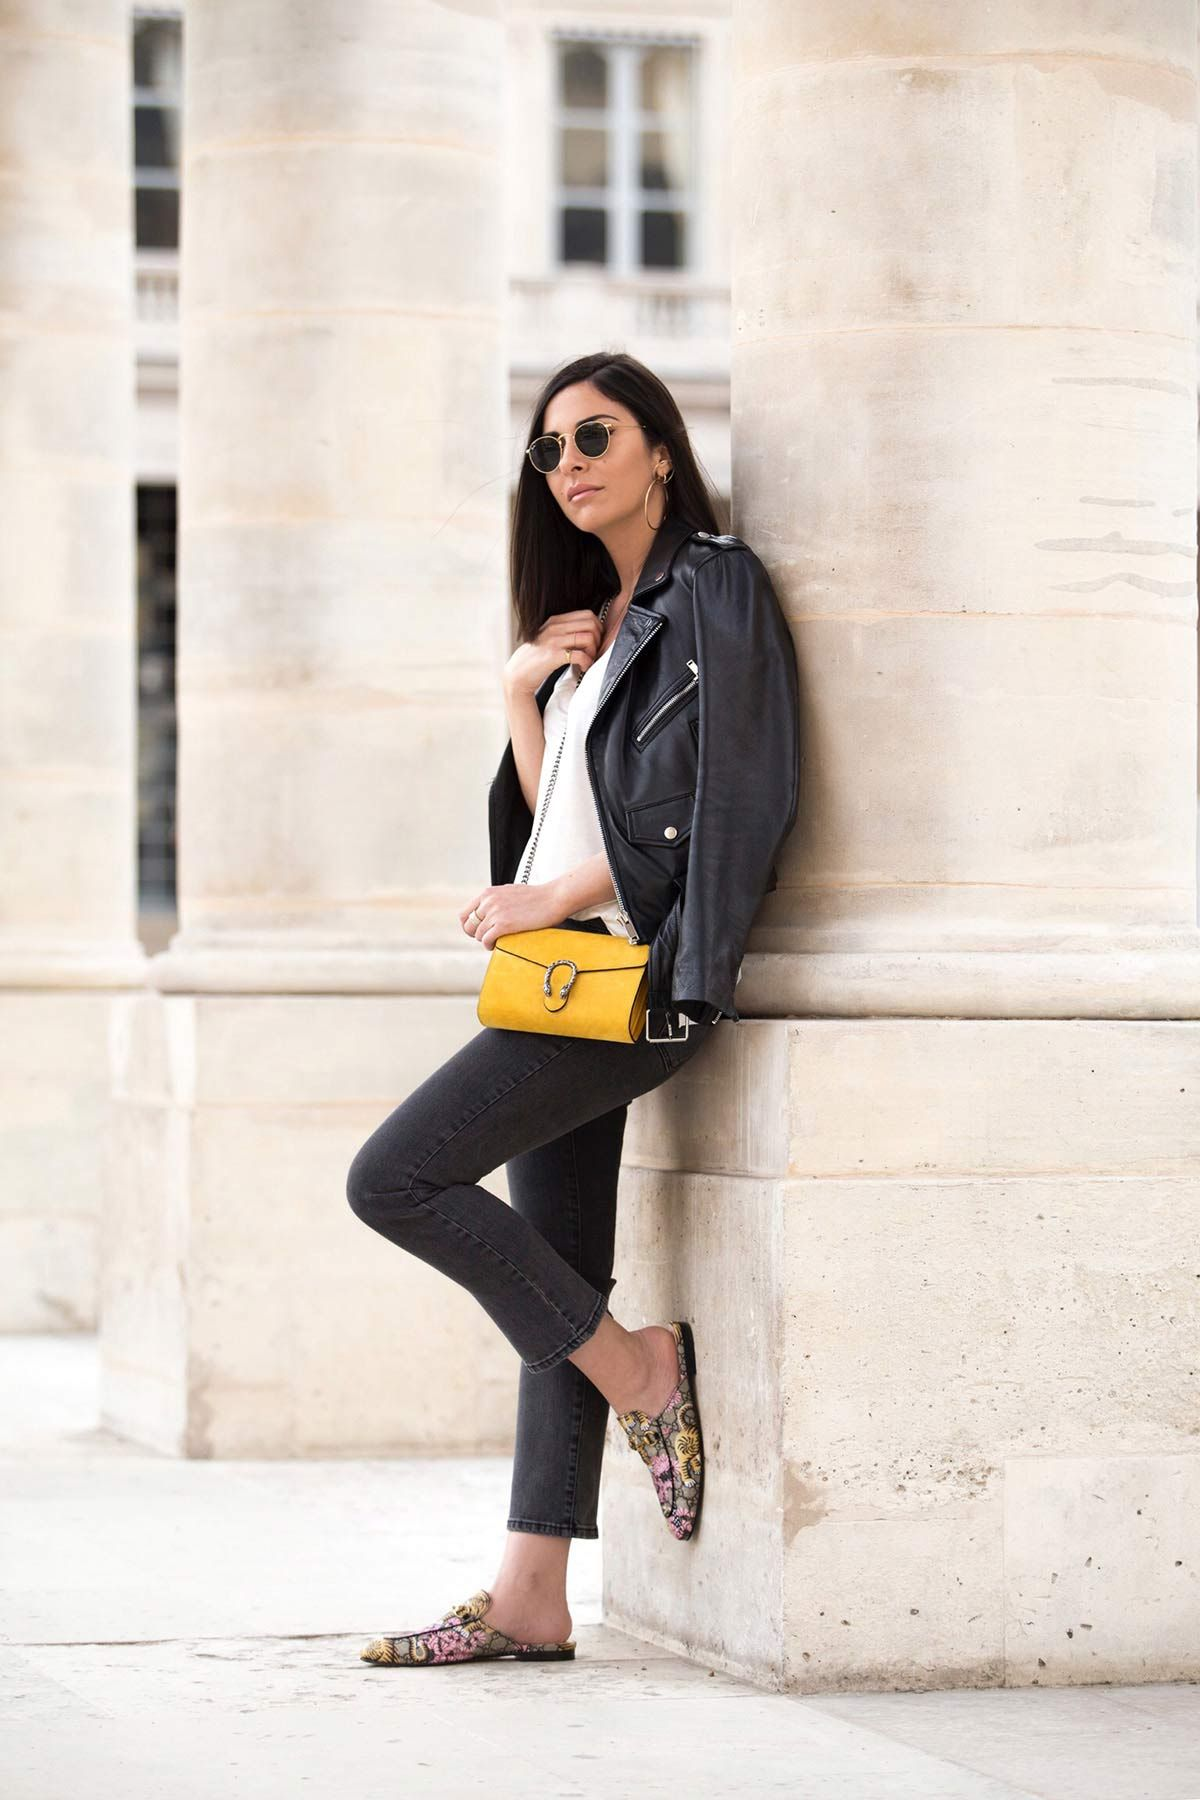 Top 10 fashion bloggers - This Months Top 10 Fashion Bloggers In Denim The Jeans Blog